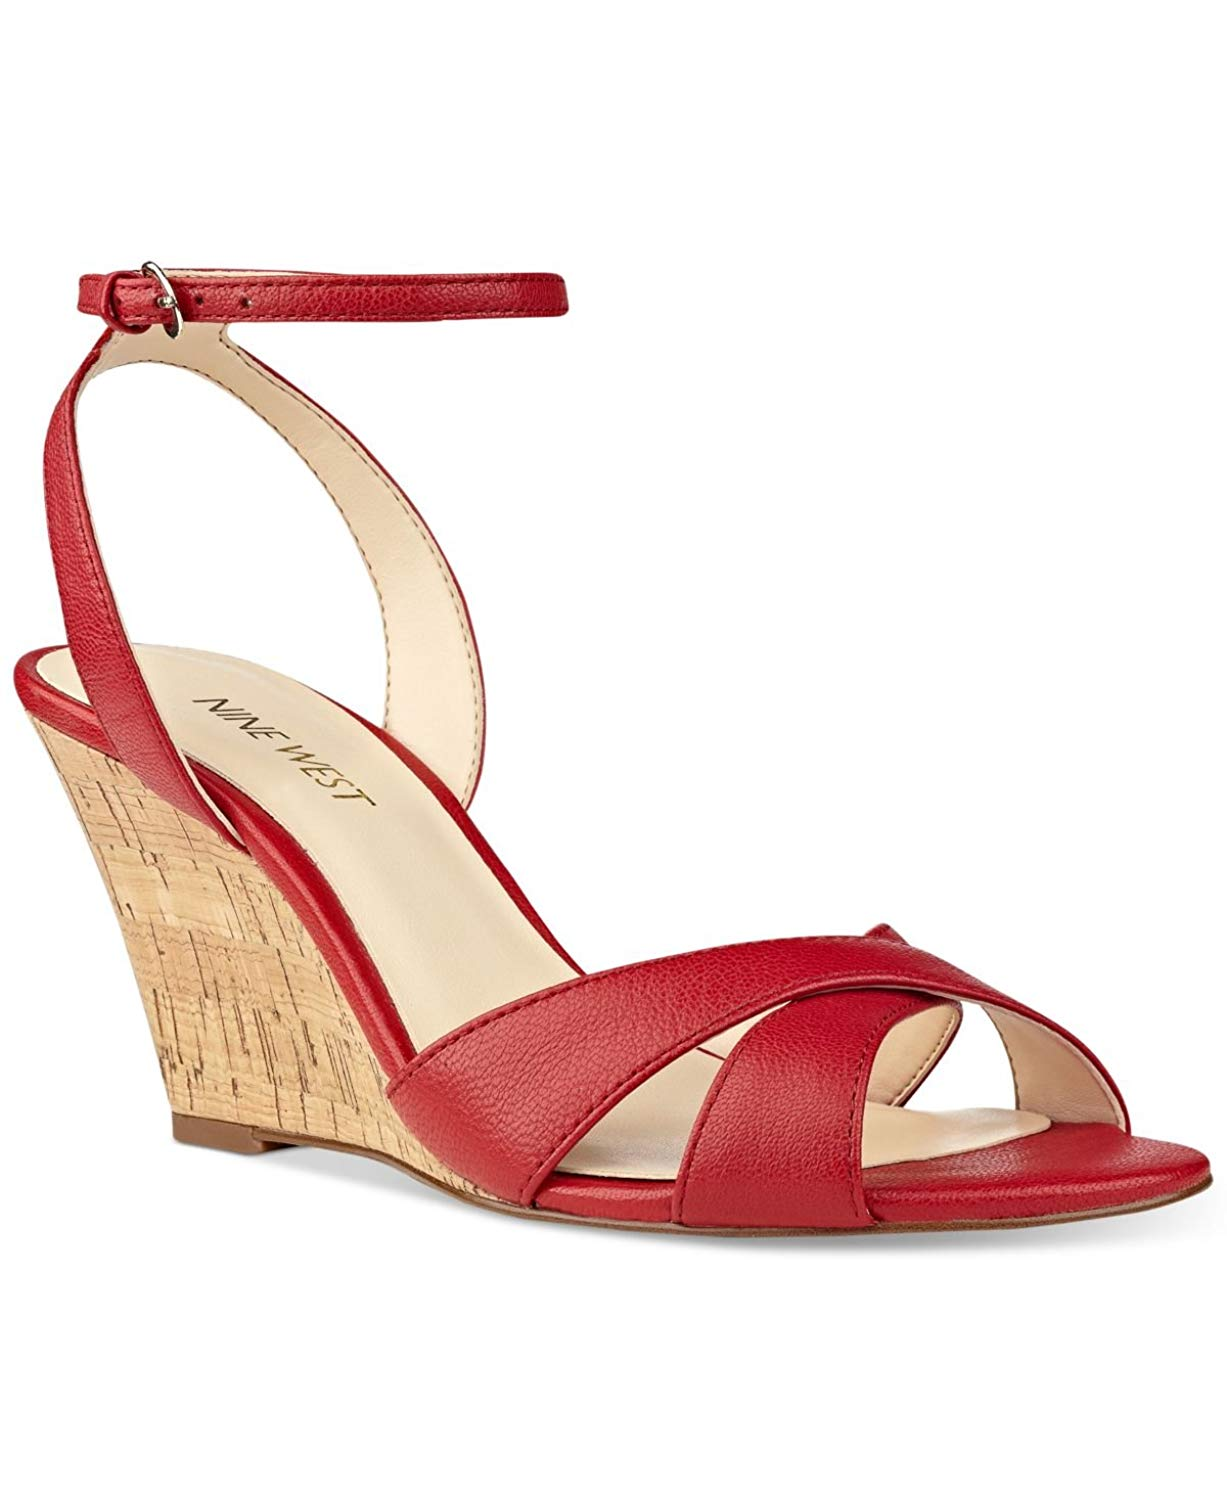 620041fcbe0 Get Quotations · Nine West Womens Kami Leather Open Toe Casual Platform  Wedges Sandals Red Leather Size 7 M